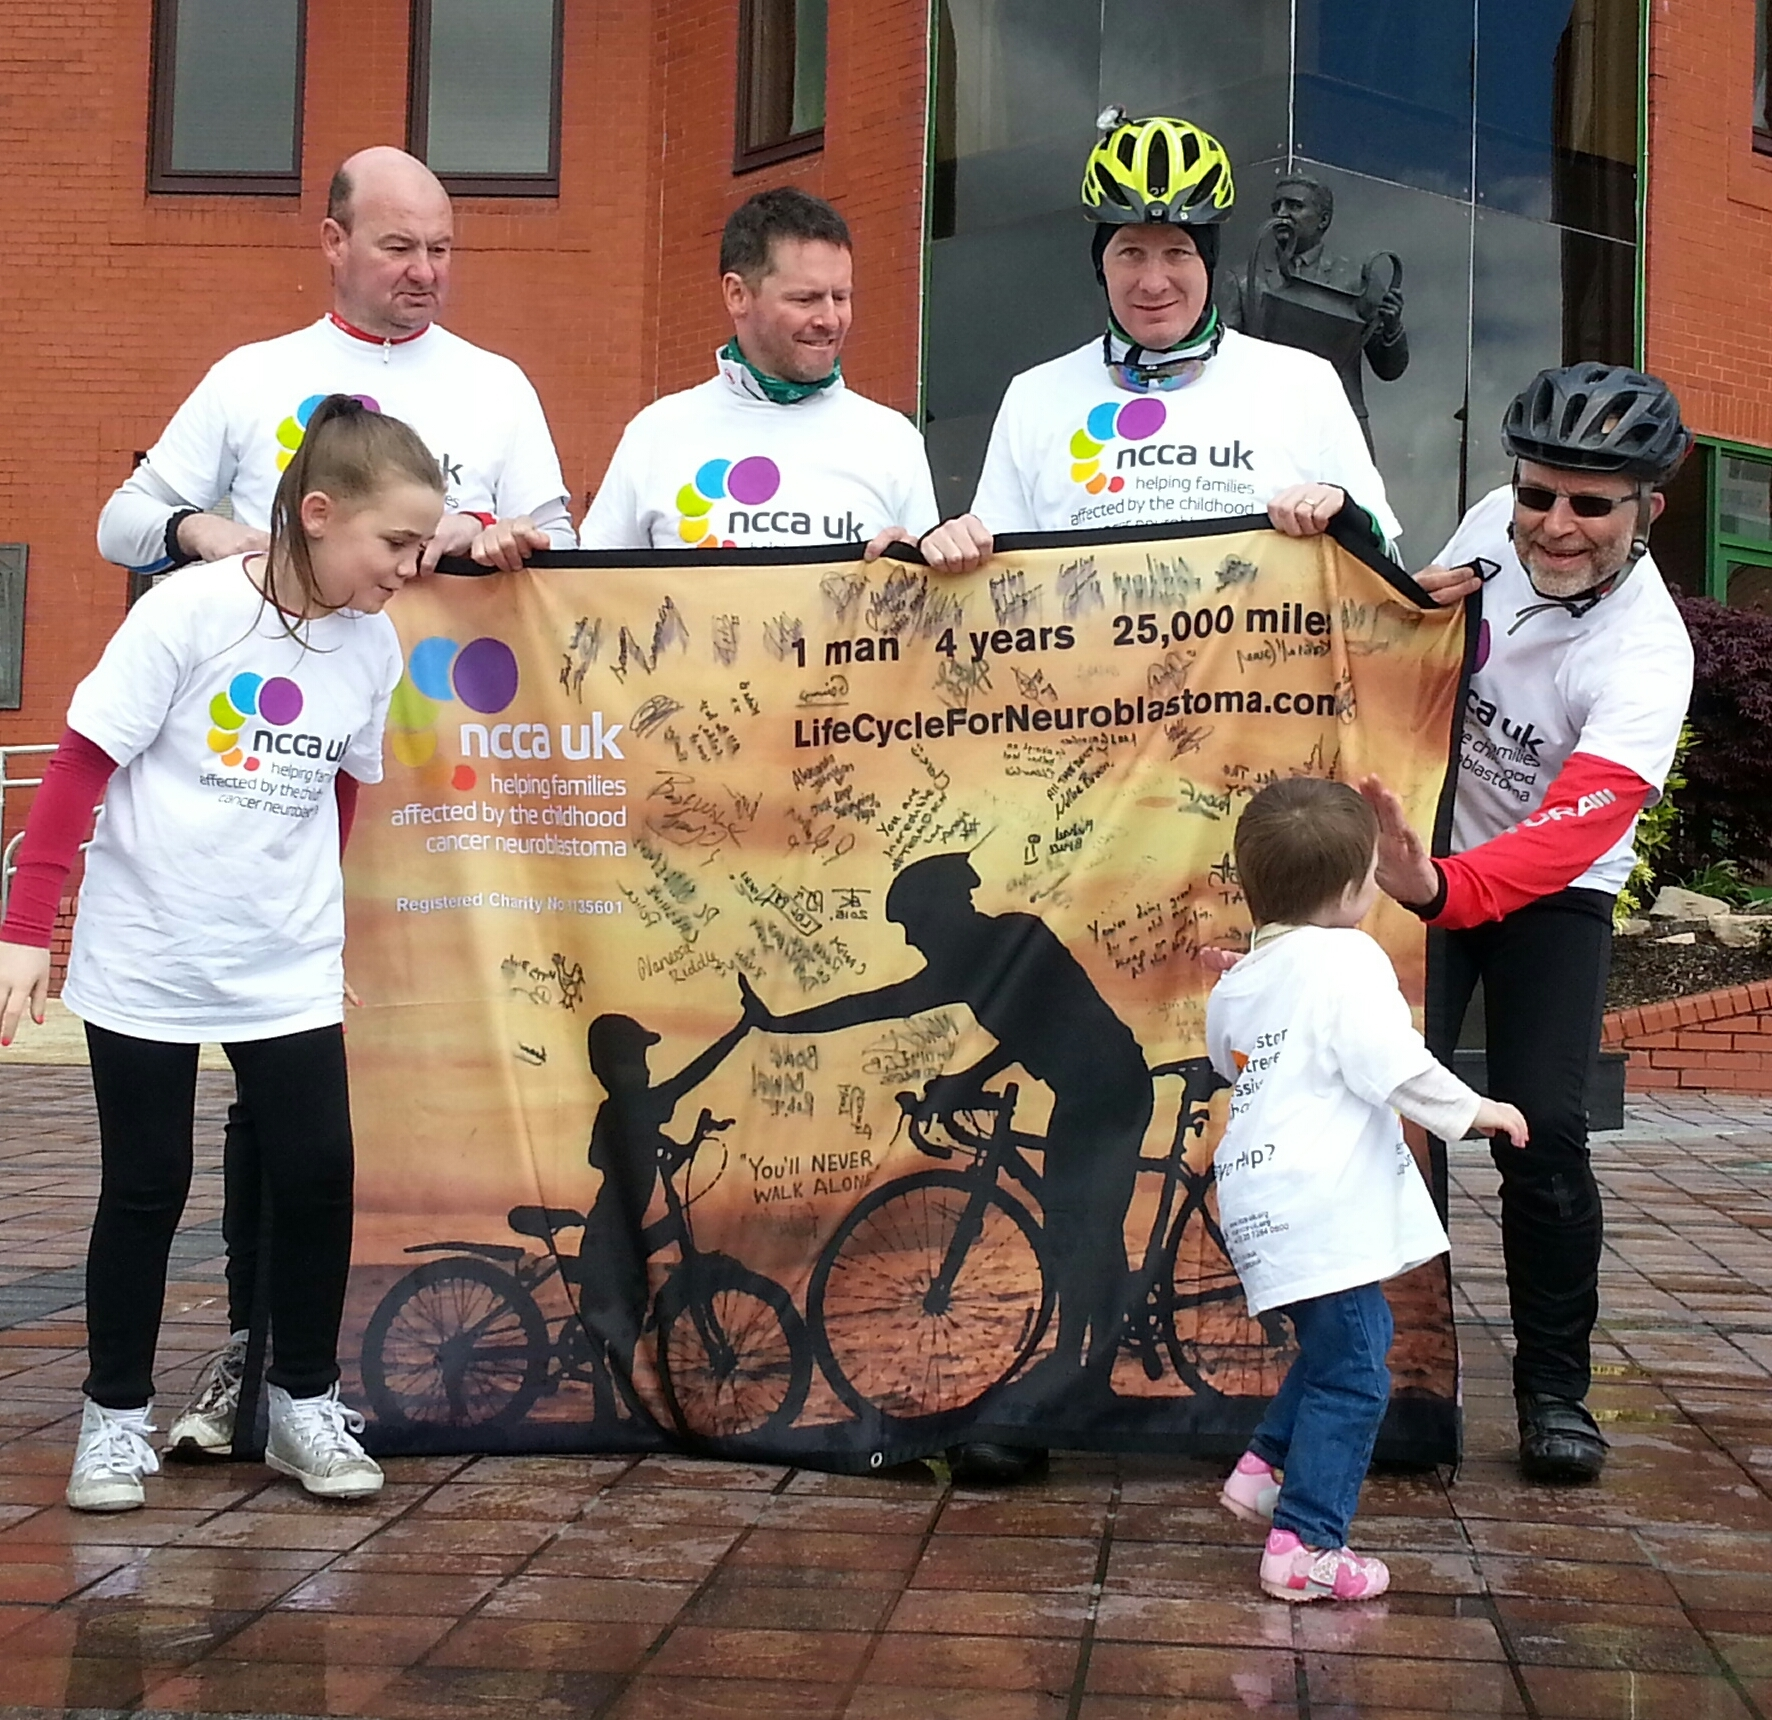 The Highland cycle helped raise crucial funds